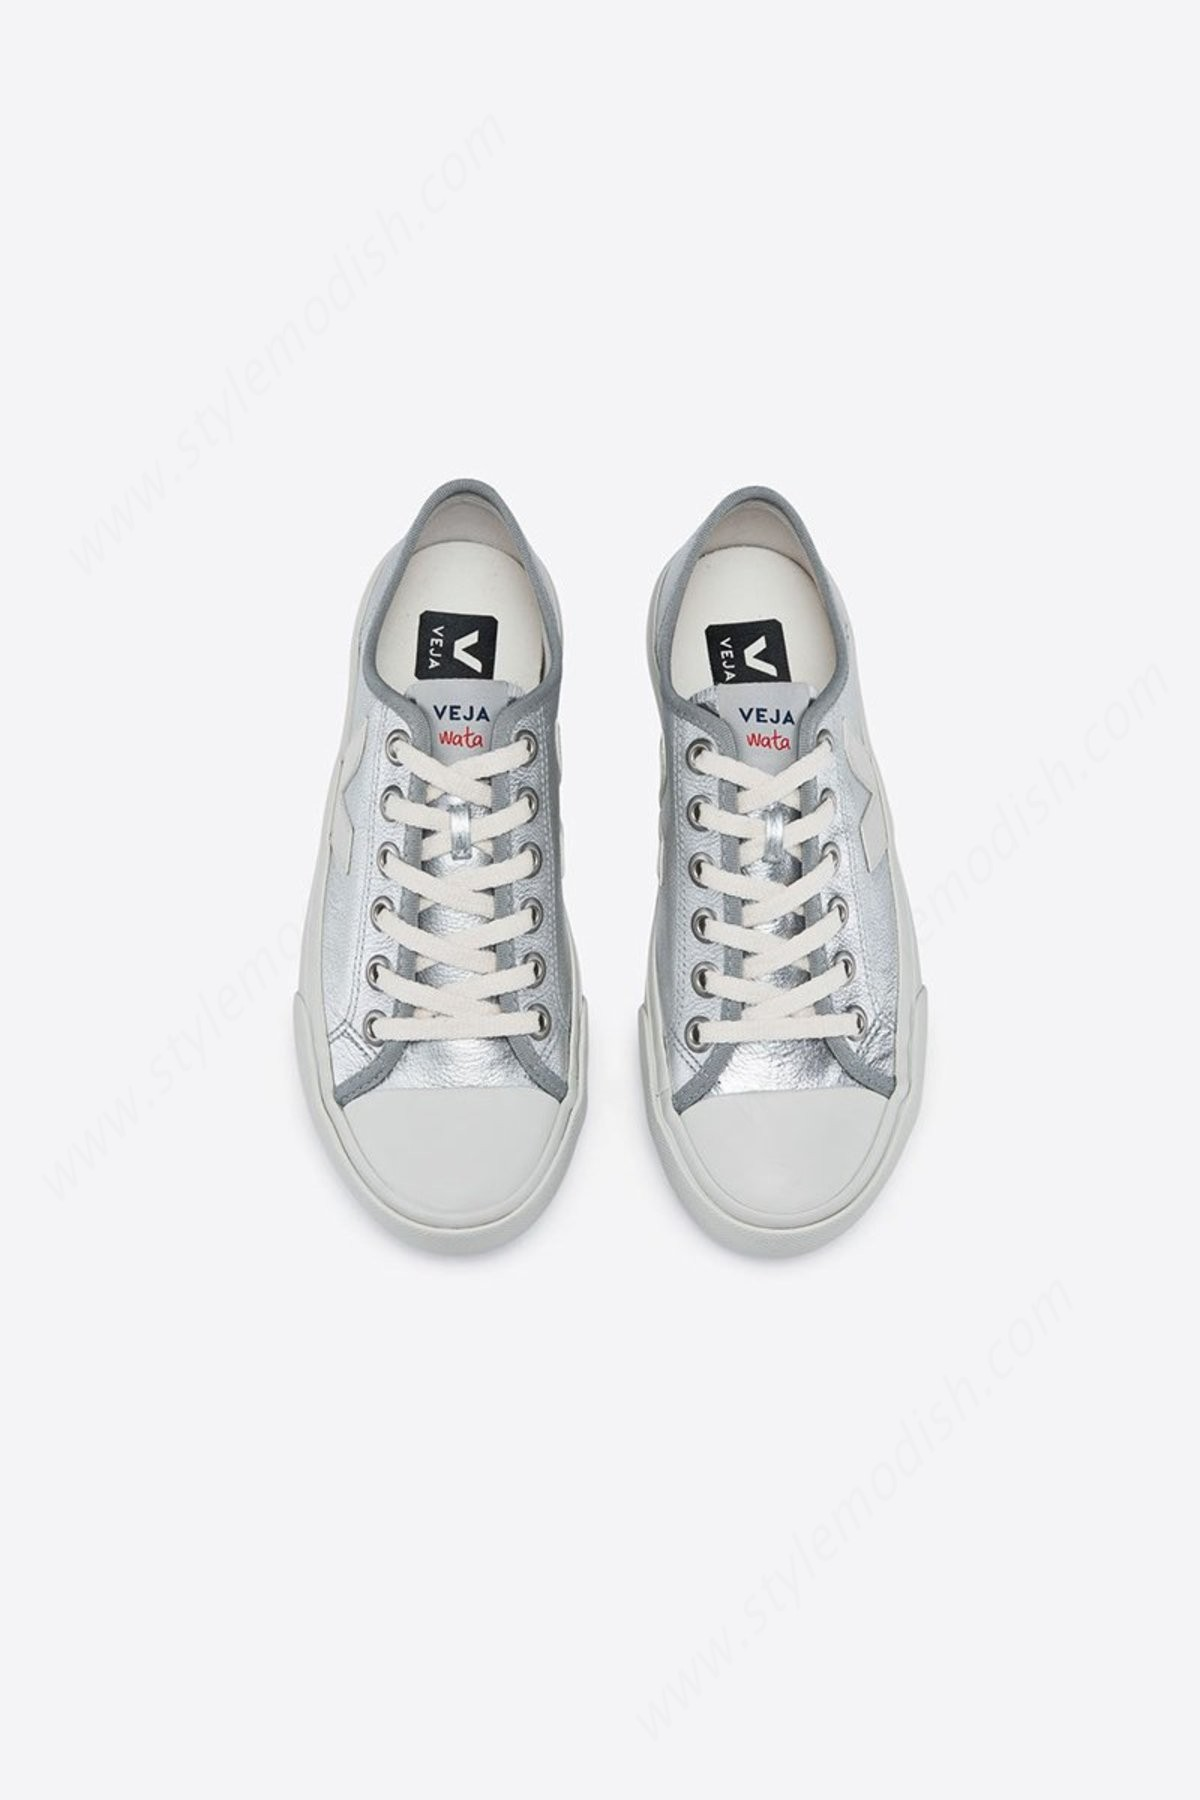 Lady's Unisex Veja Wata Leather Pierre Shoe - Silver  - -2